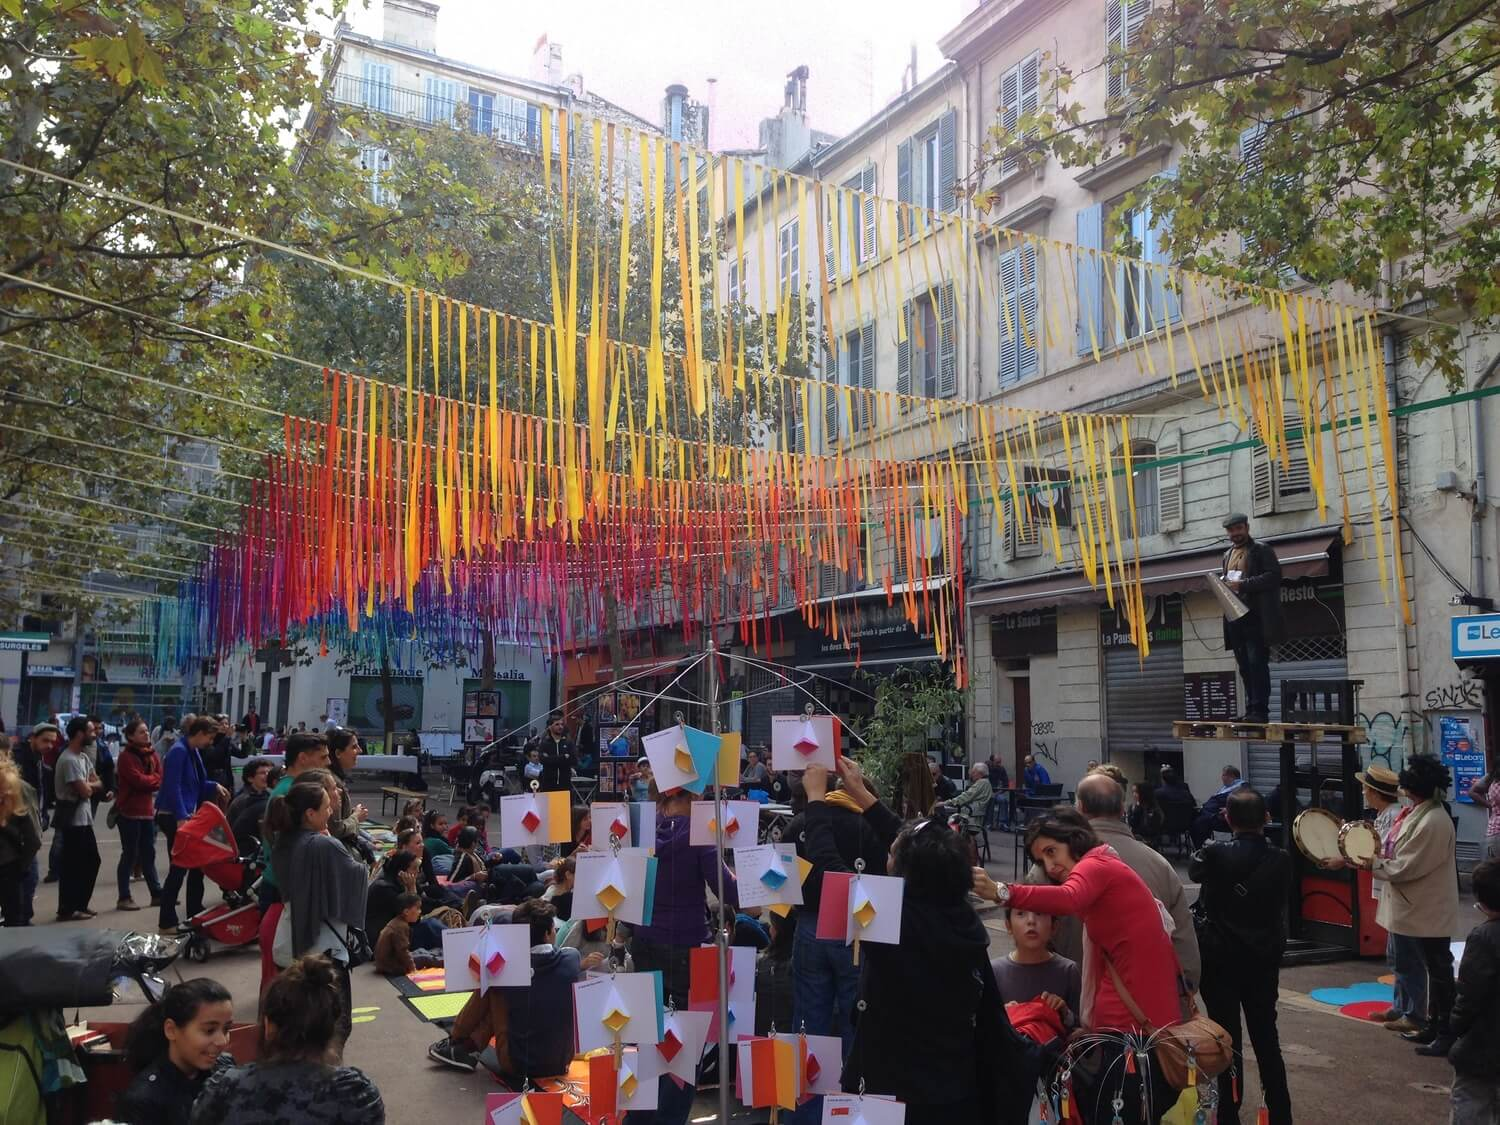 Place à l'art, 2014 edition. Photo by Canan Marasligil